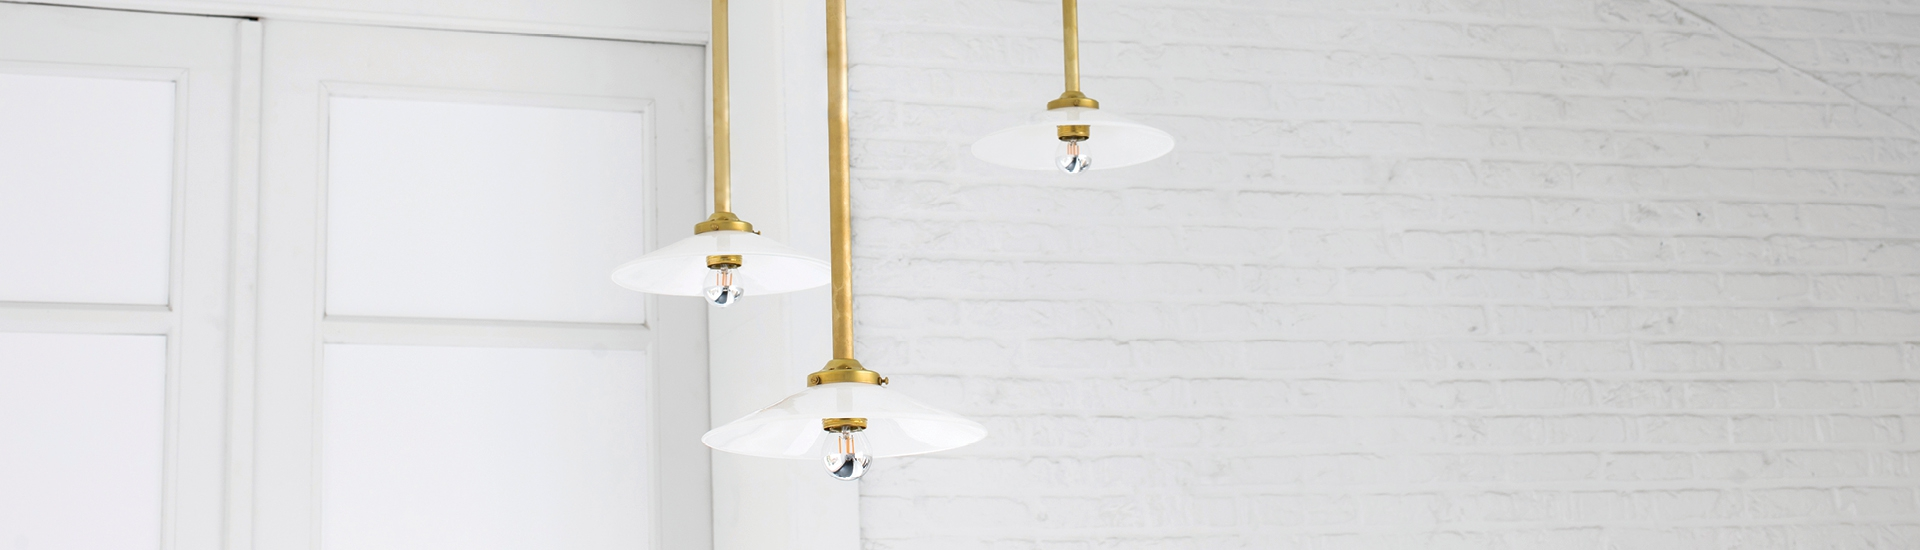 hanging lamps by muller van severen